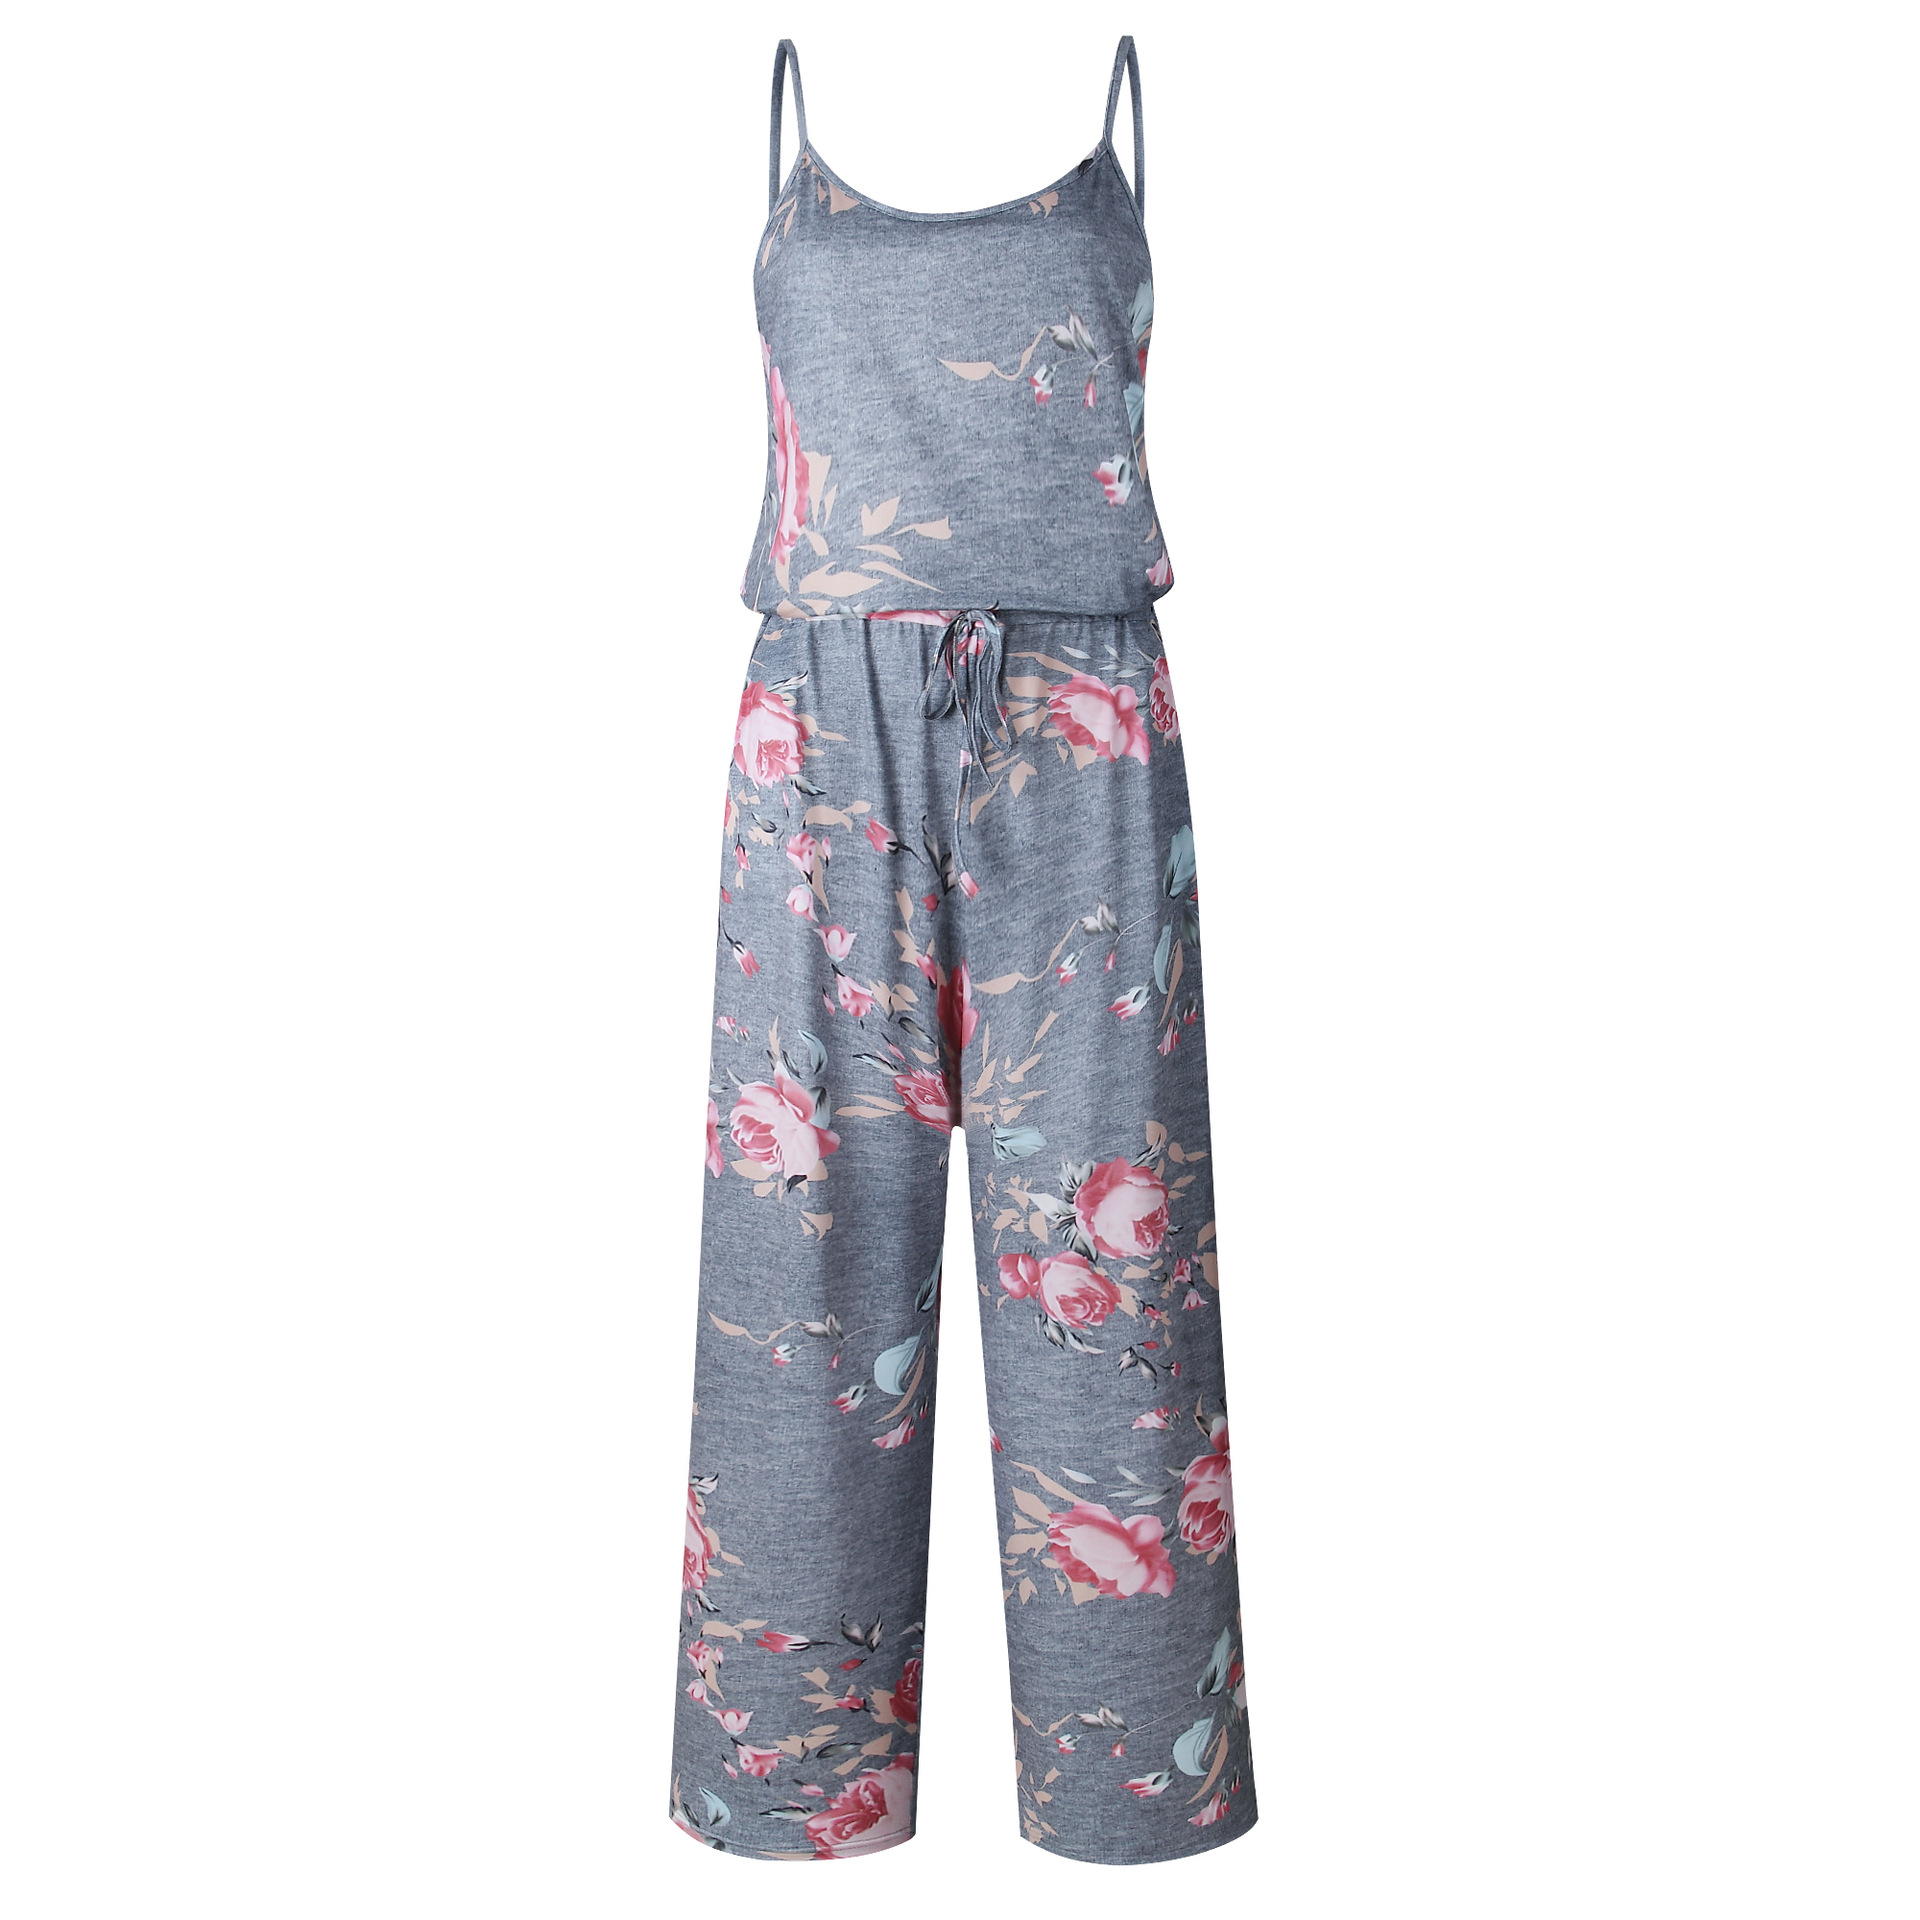 Spaghetti Strap Jumpsuit Women 2018 Summer Long Pants Floral Print Rompers Beach Casual Jumpsuits Sleeveless Sashes Playsuits 12